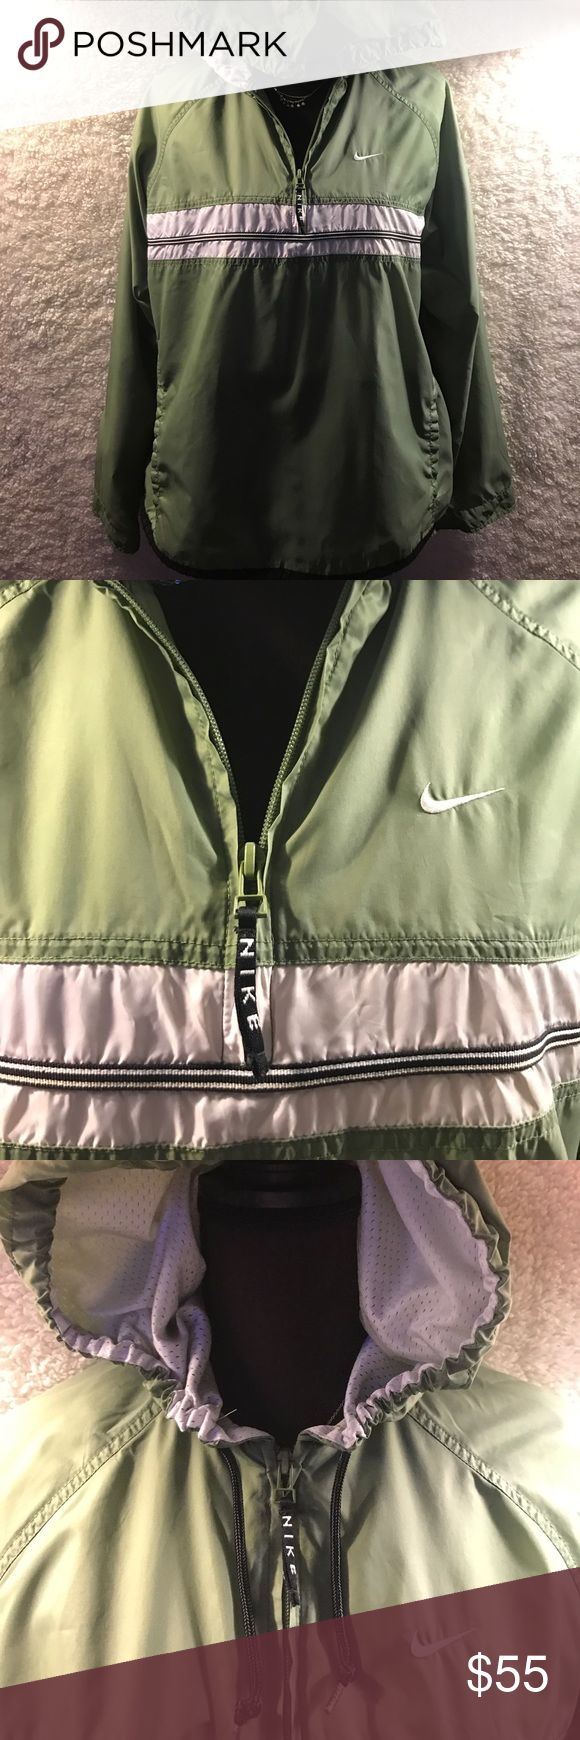 Nike rain jacket/wind breaker Green and white Nike rain jacket! Very light and easy to take on and off. Has drawstrings and Velcro to make more fitting Nike Jackets & Coats